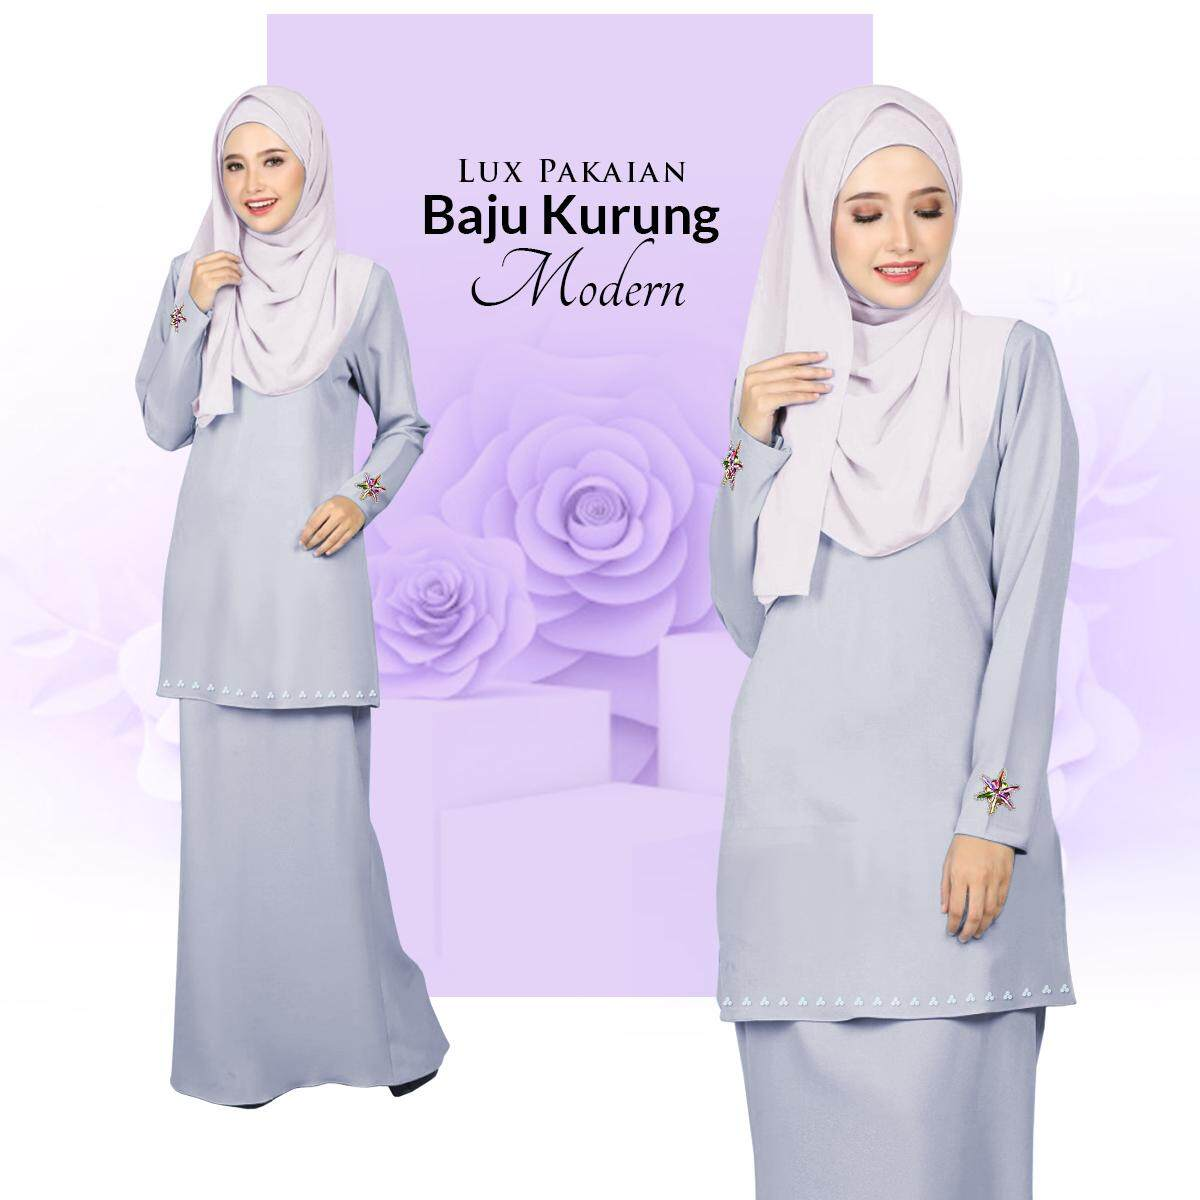 Price List Lux Pakaian Baju Kurung Modern with Stylish Bunch & Batu 2020